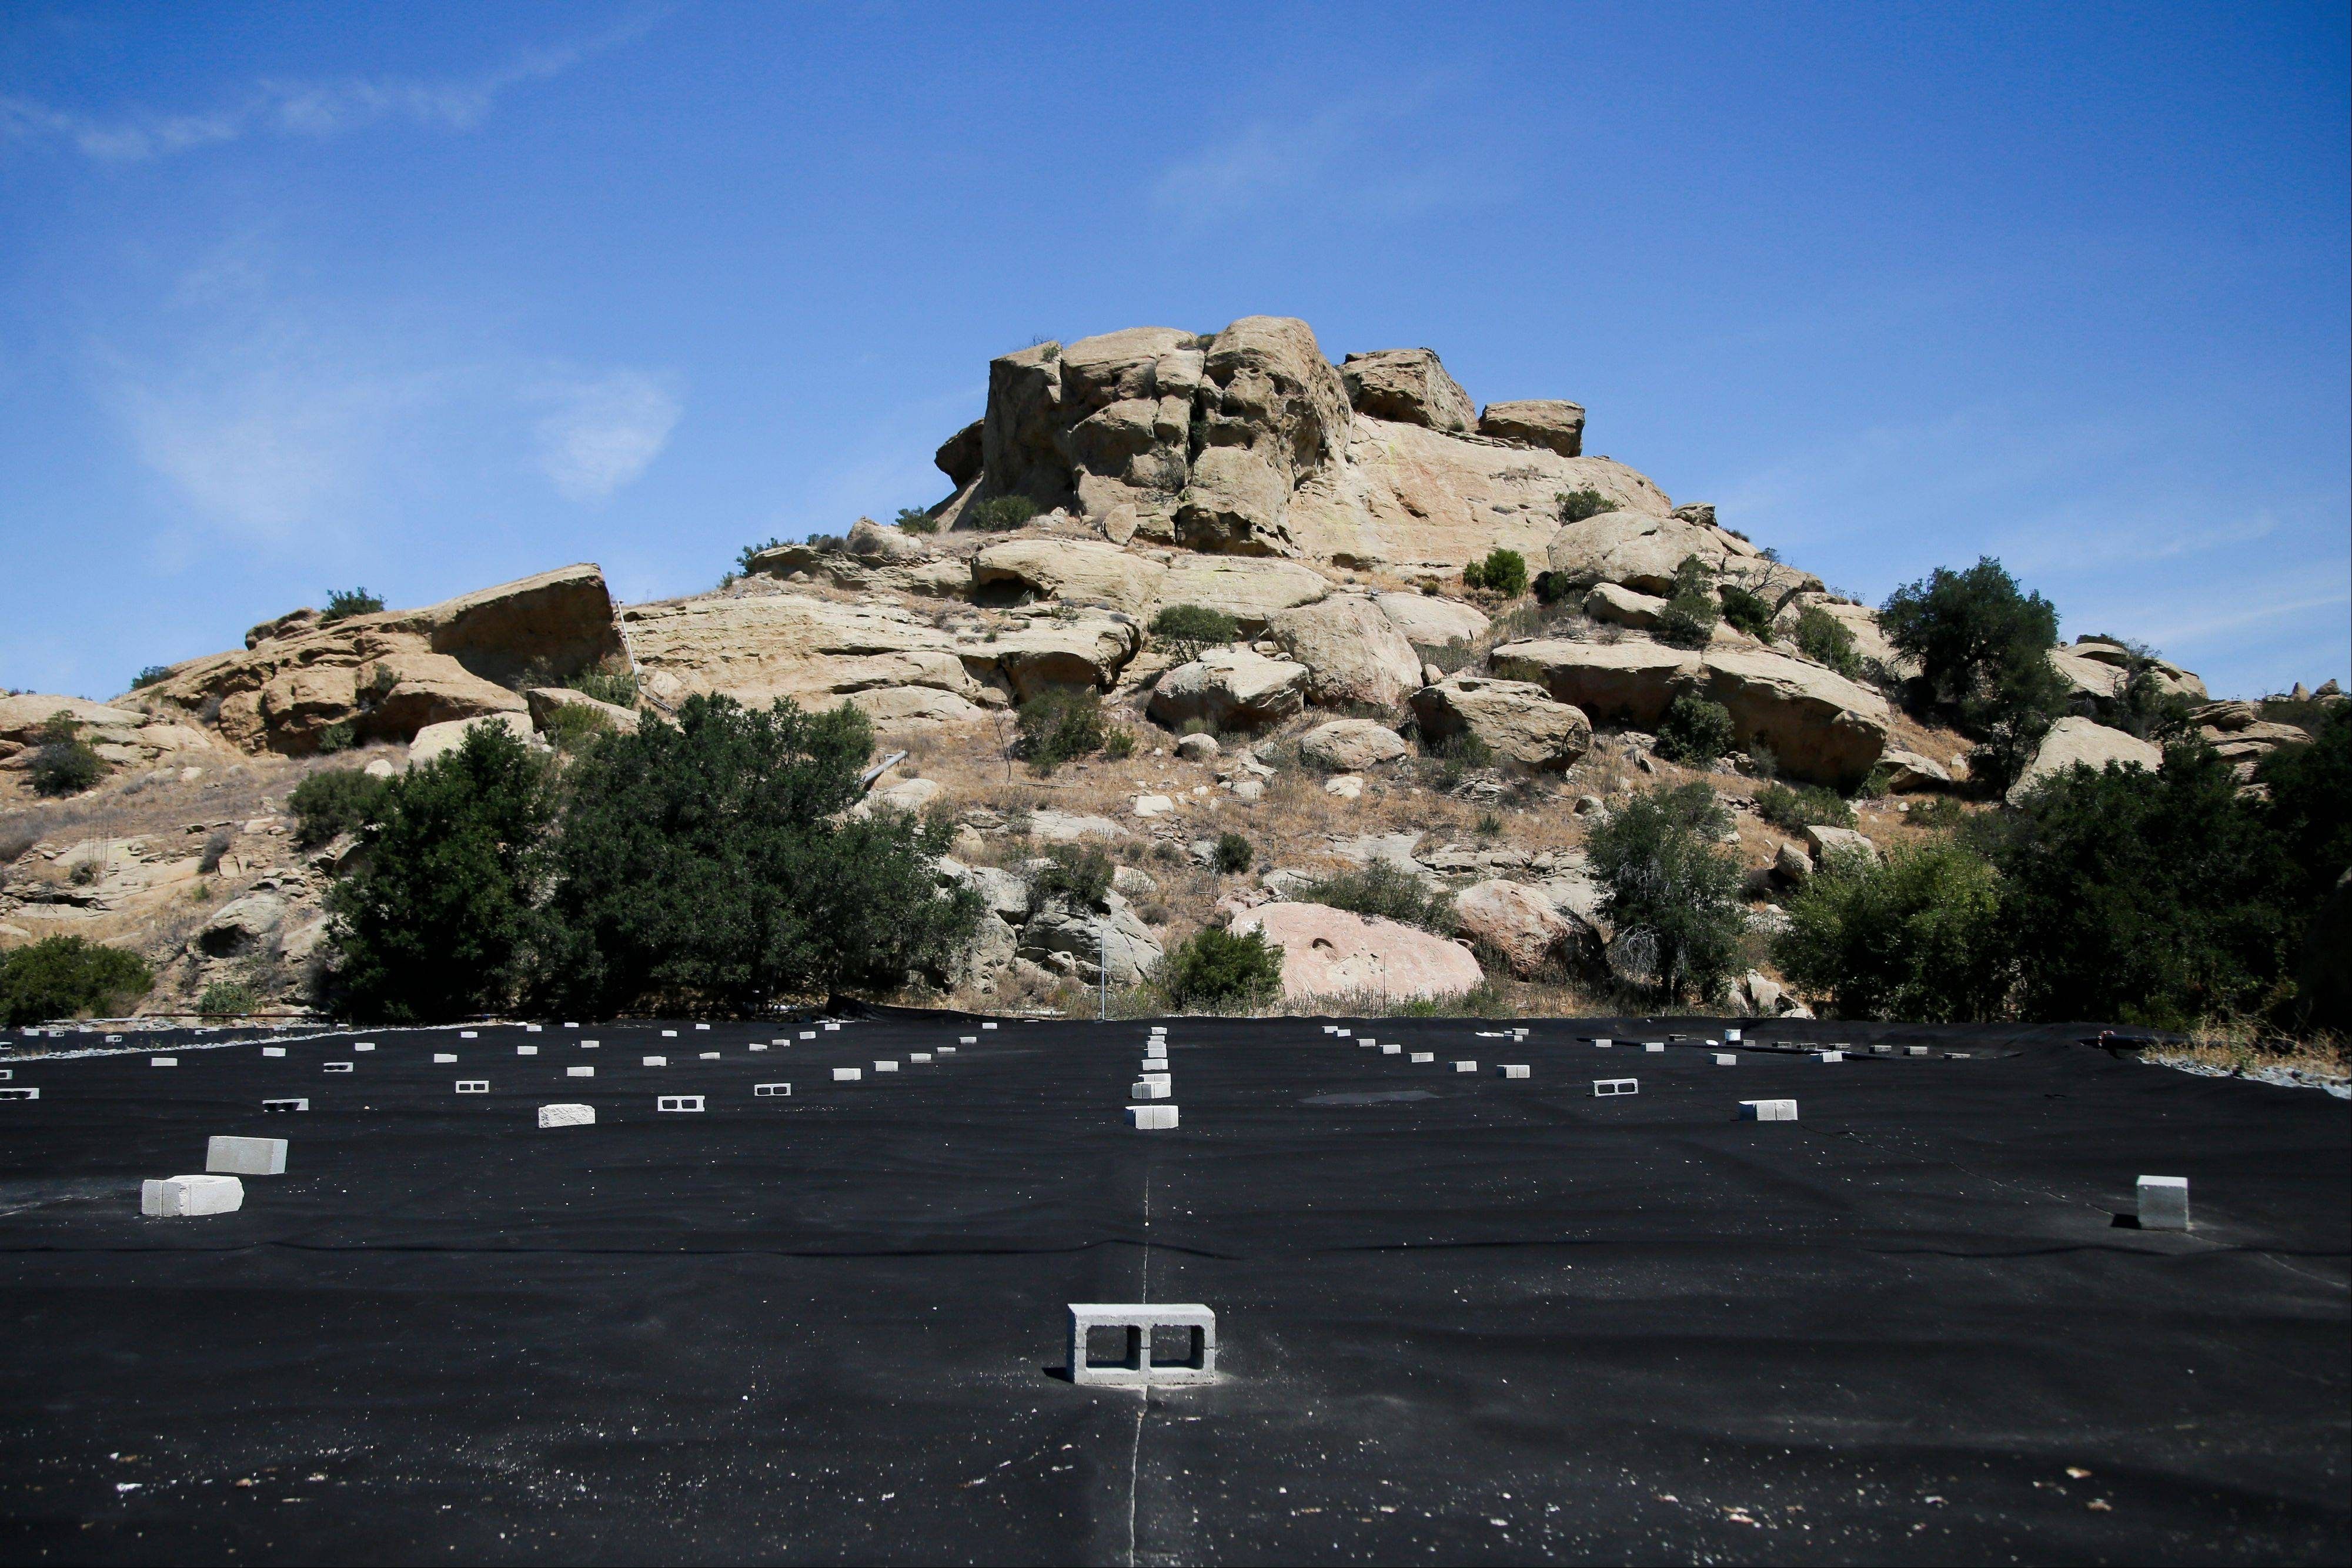 A black tarp covers the field to stabilize mercury-containing soil at the Santa Susana Field Laboratory in Simi Valley, Calif. last July. Founded in 1947 by North American Aviation, Santa Susana quickly became an aerospace hub.